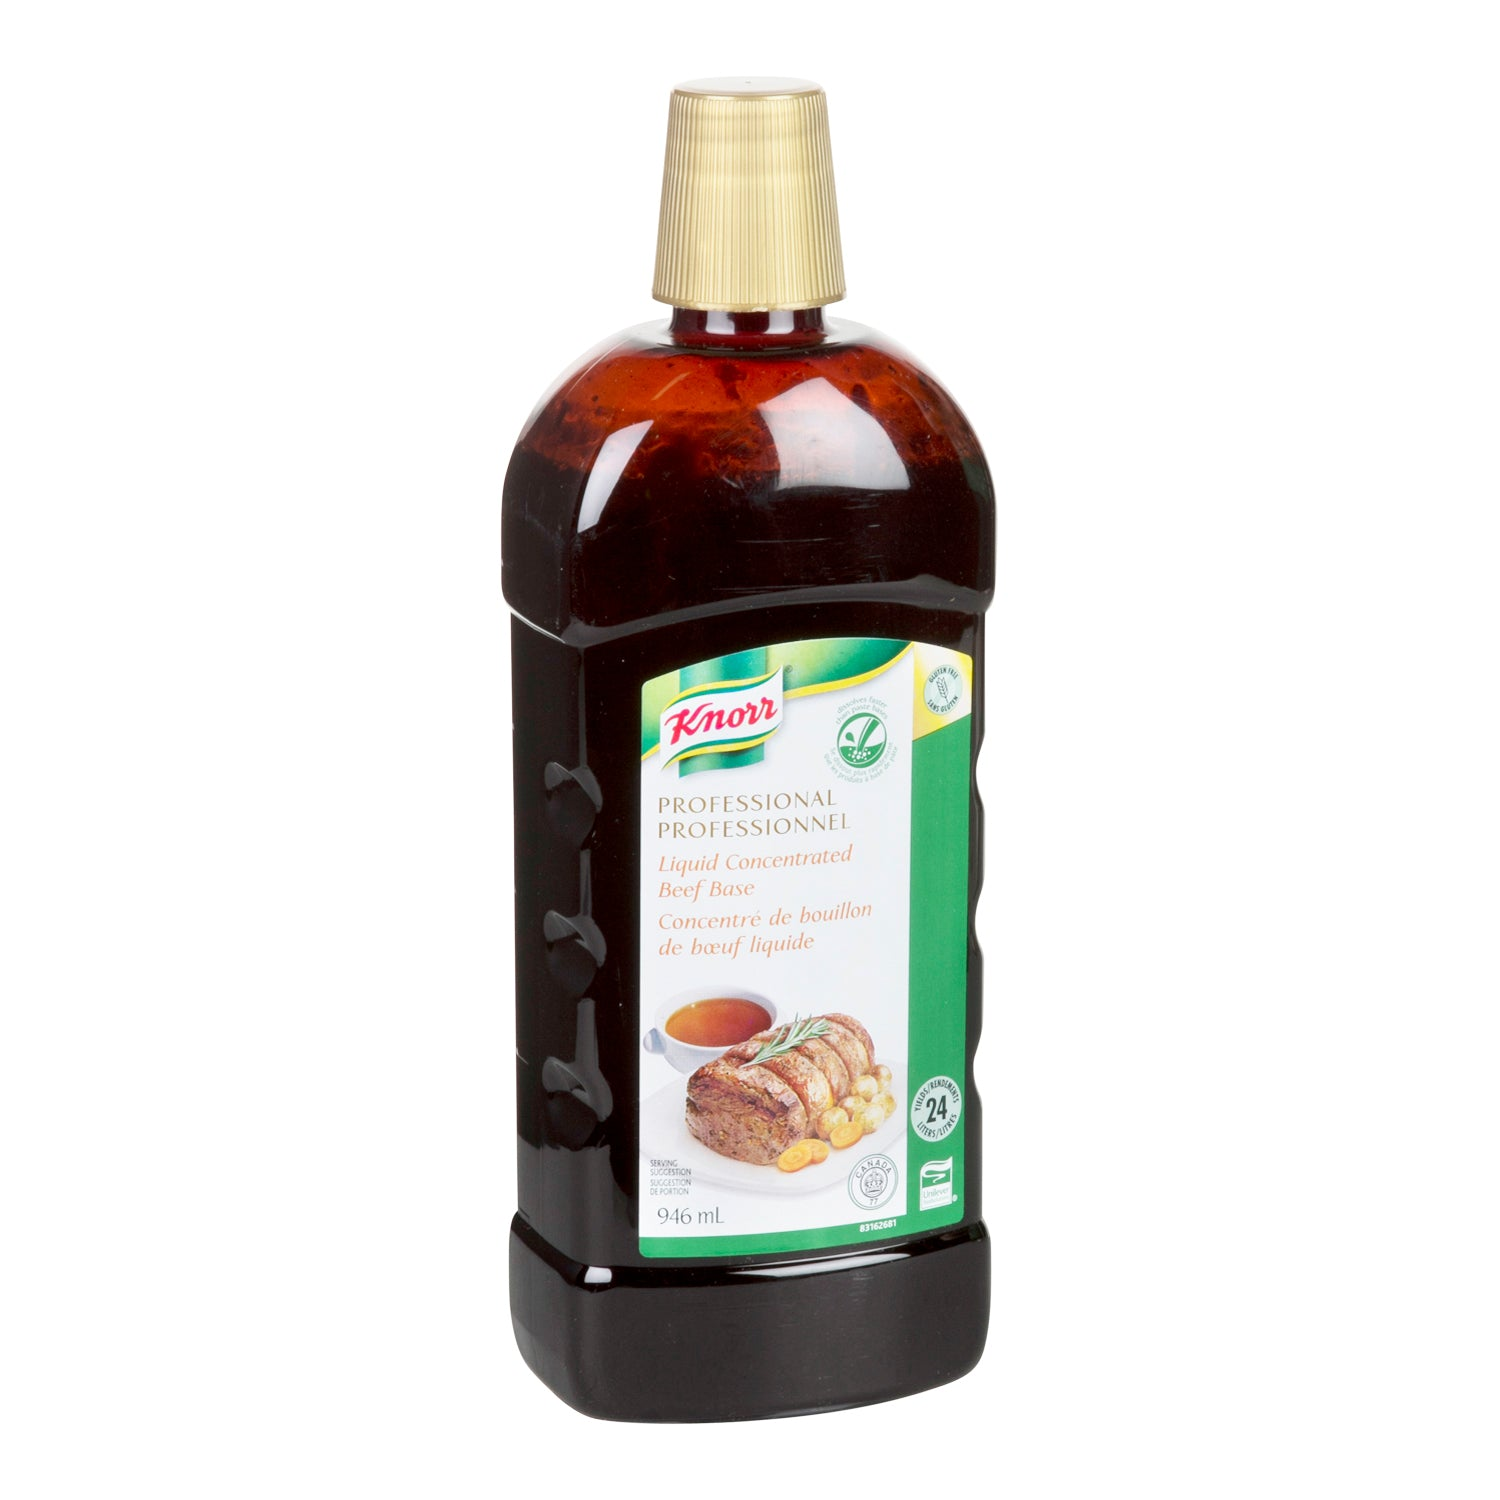 Knorr Professional Liquid Concentrate Beef Base 946 ml - 4 Pack [$17.00/each]